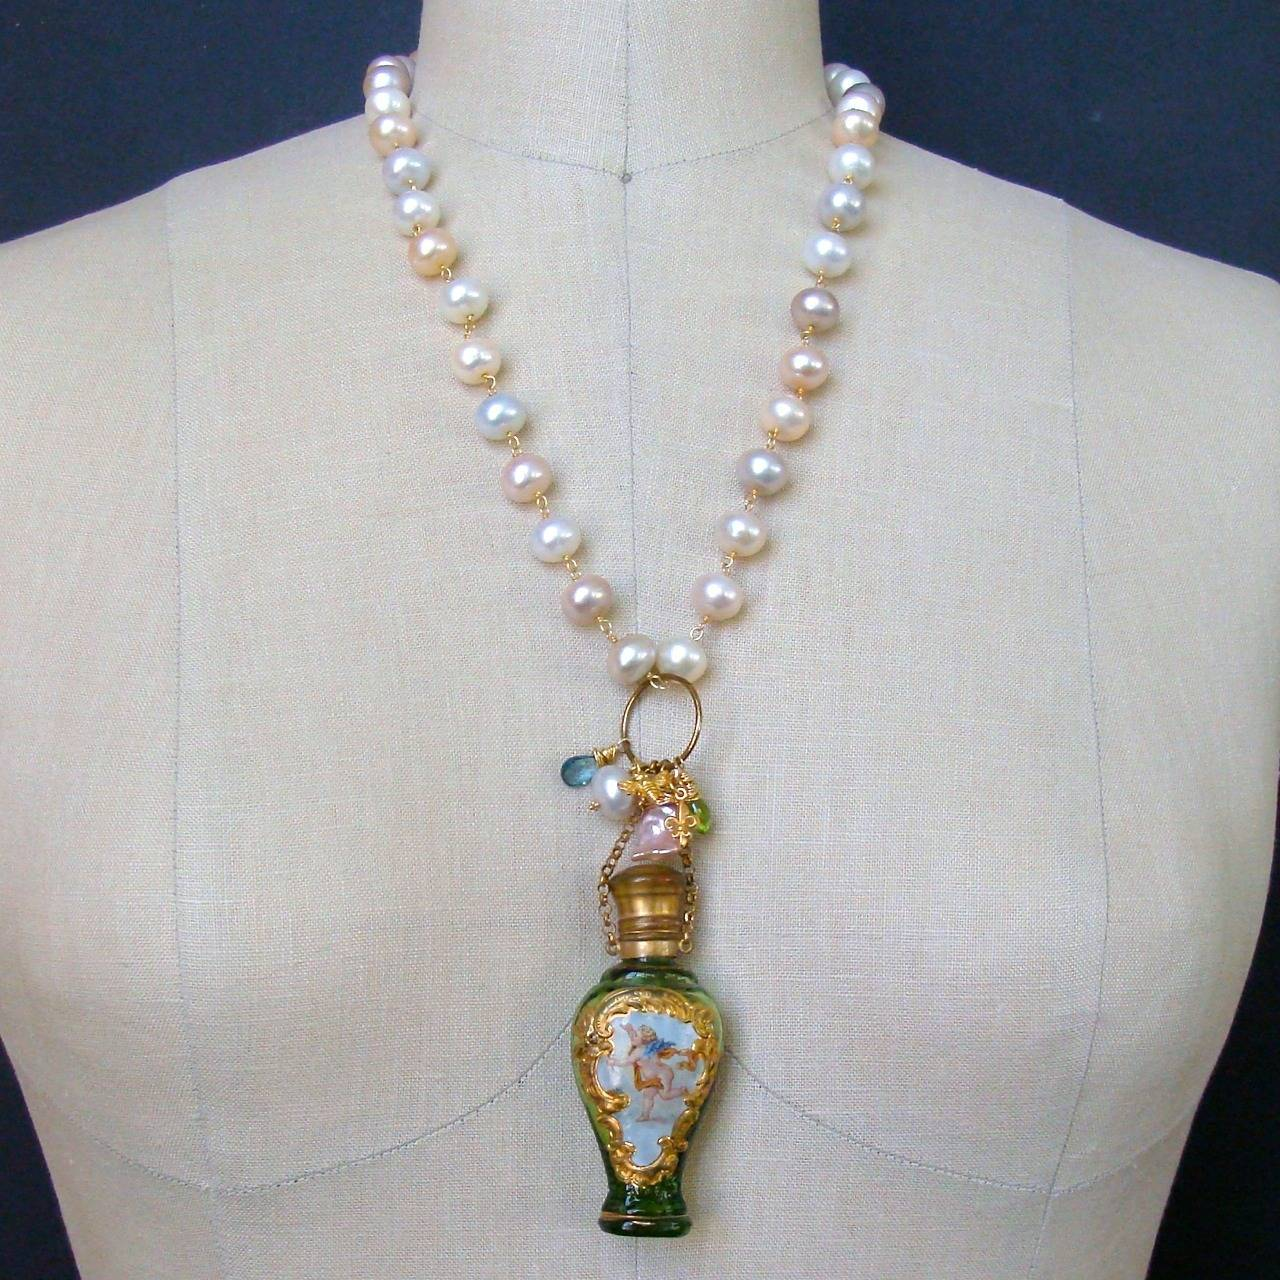 Cherub Chatelaine Scent Bottle Pink Baroque Pearls Necklace 10